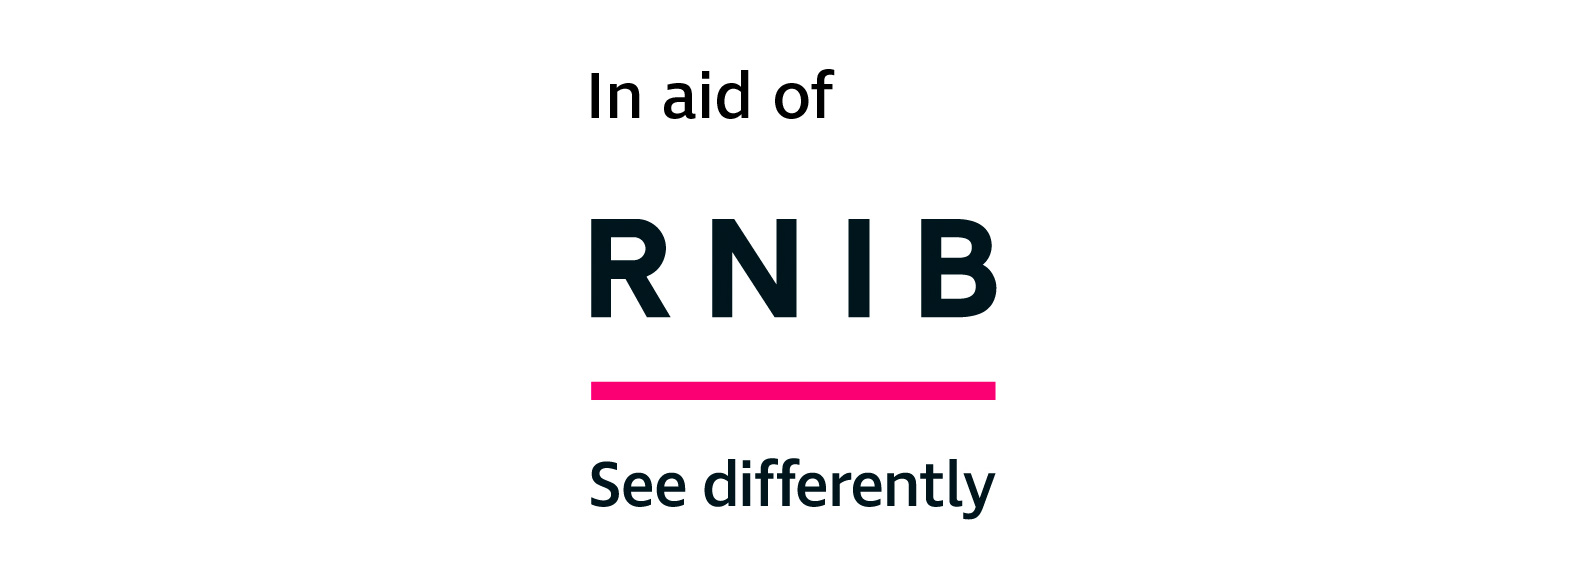 Collecting used stamps for the RNIB ~ the Royal National Institute of Blind People